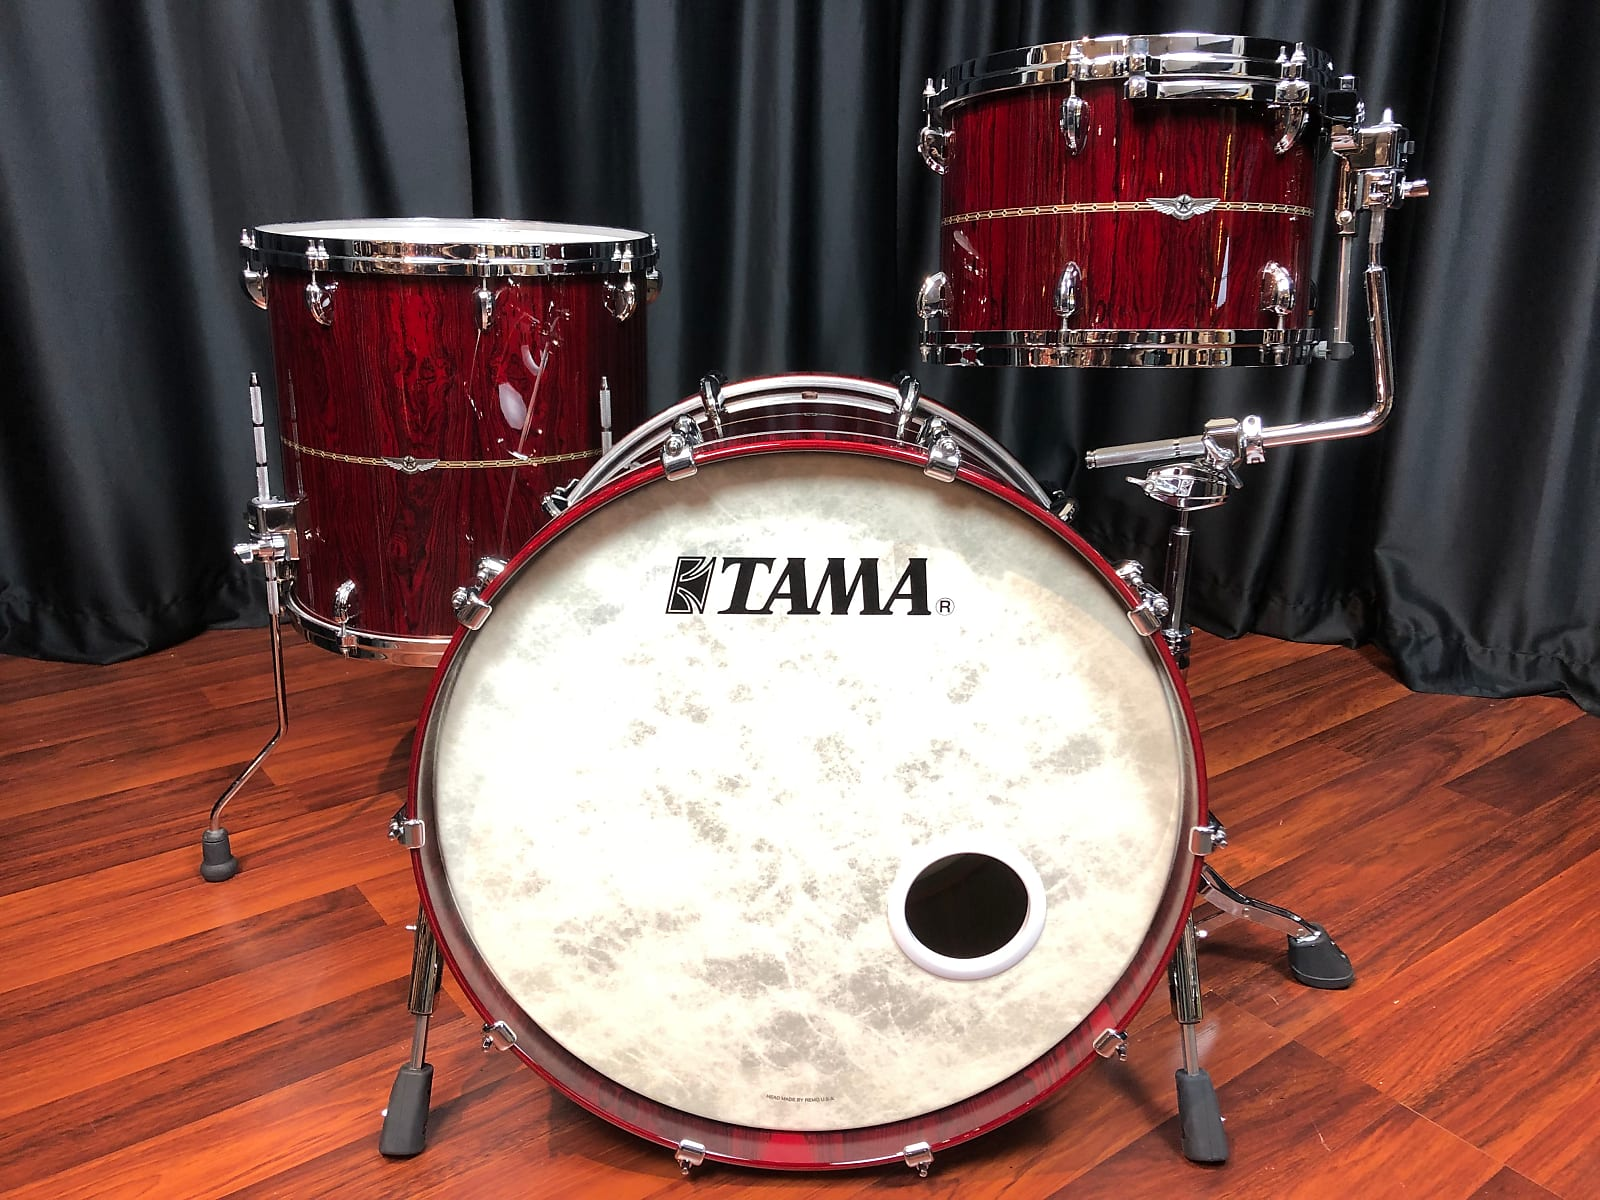 Tama drums sets Star Bubinga Dark Red Cordia 22, 16, 13